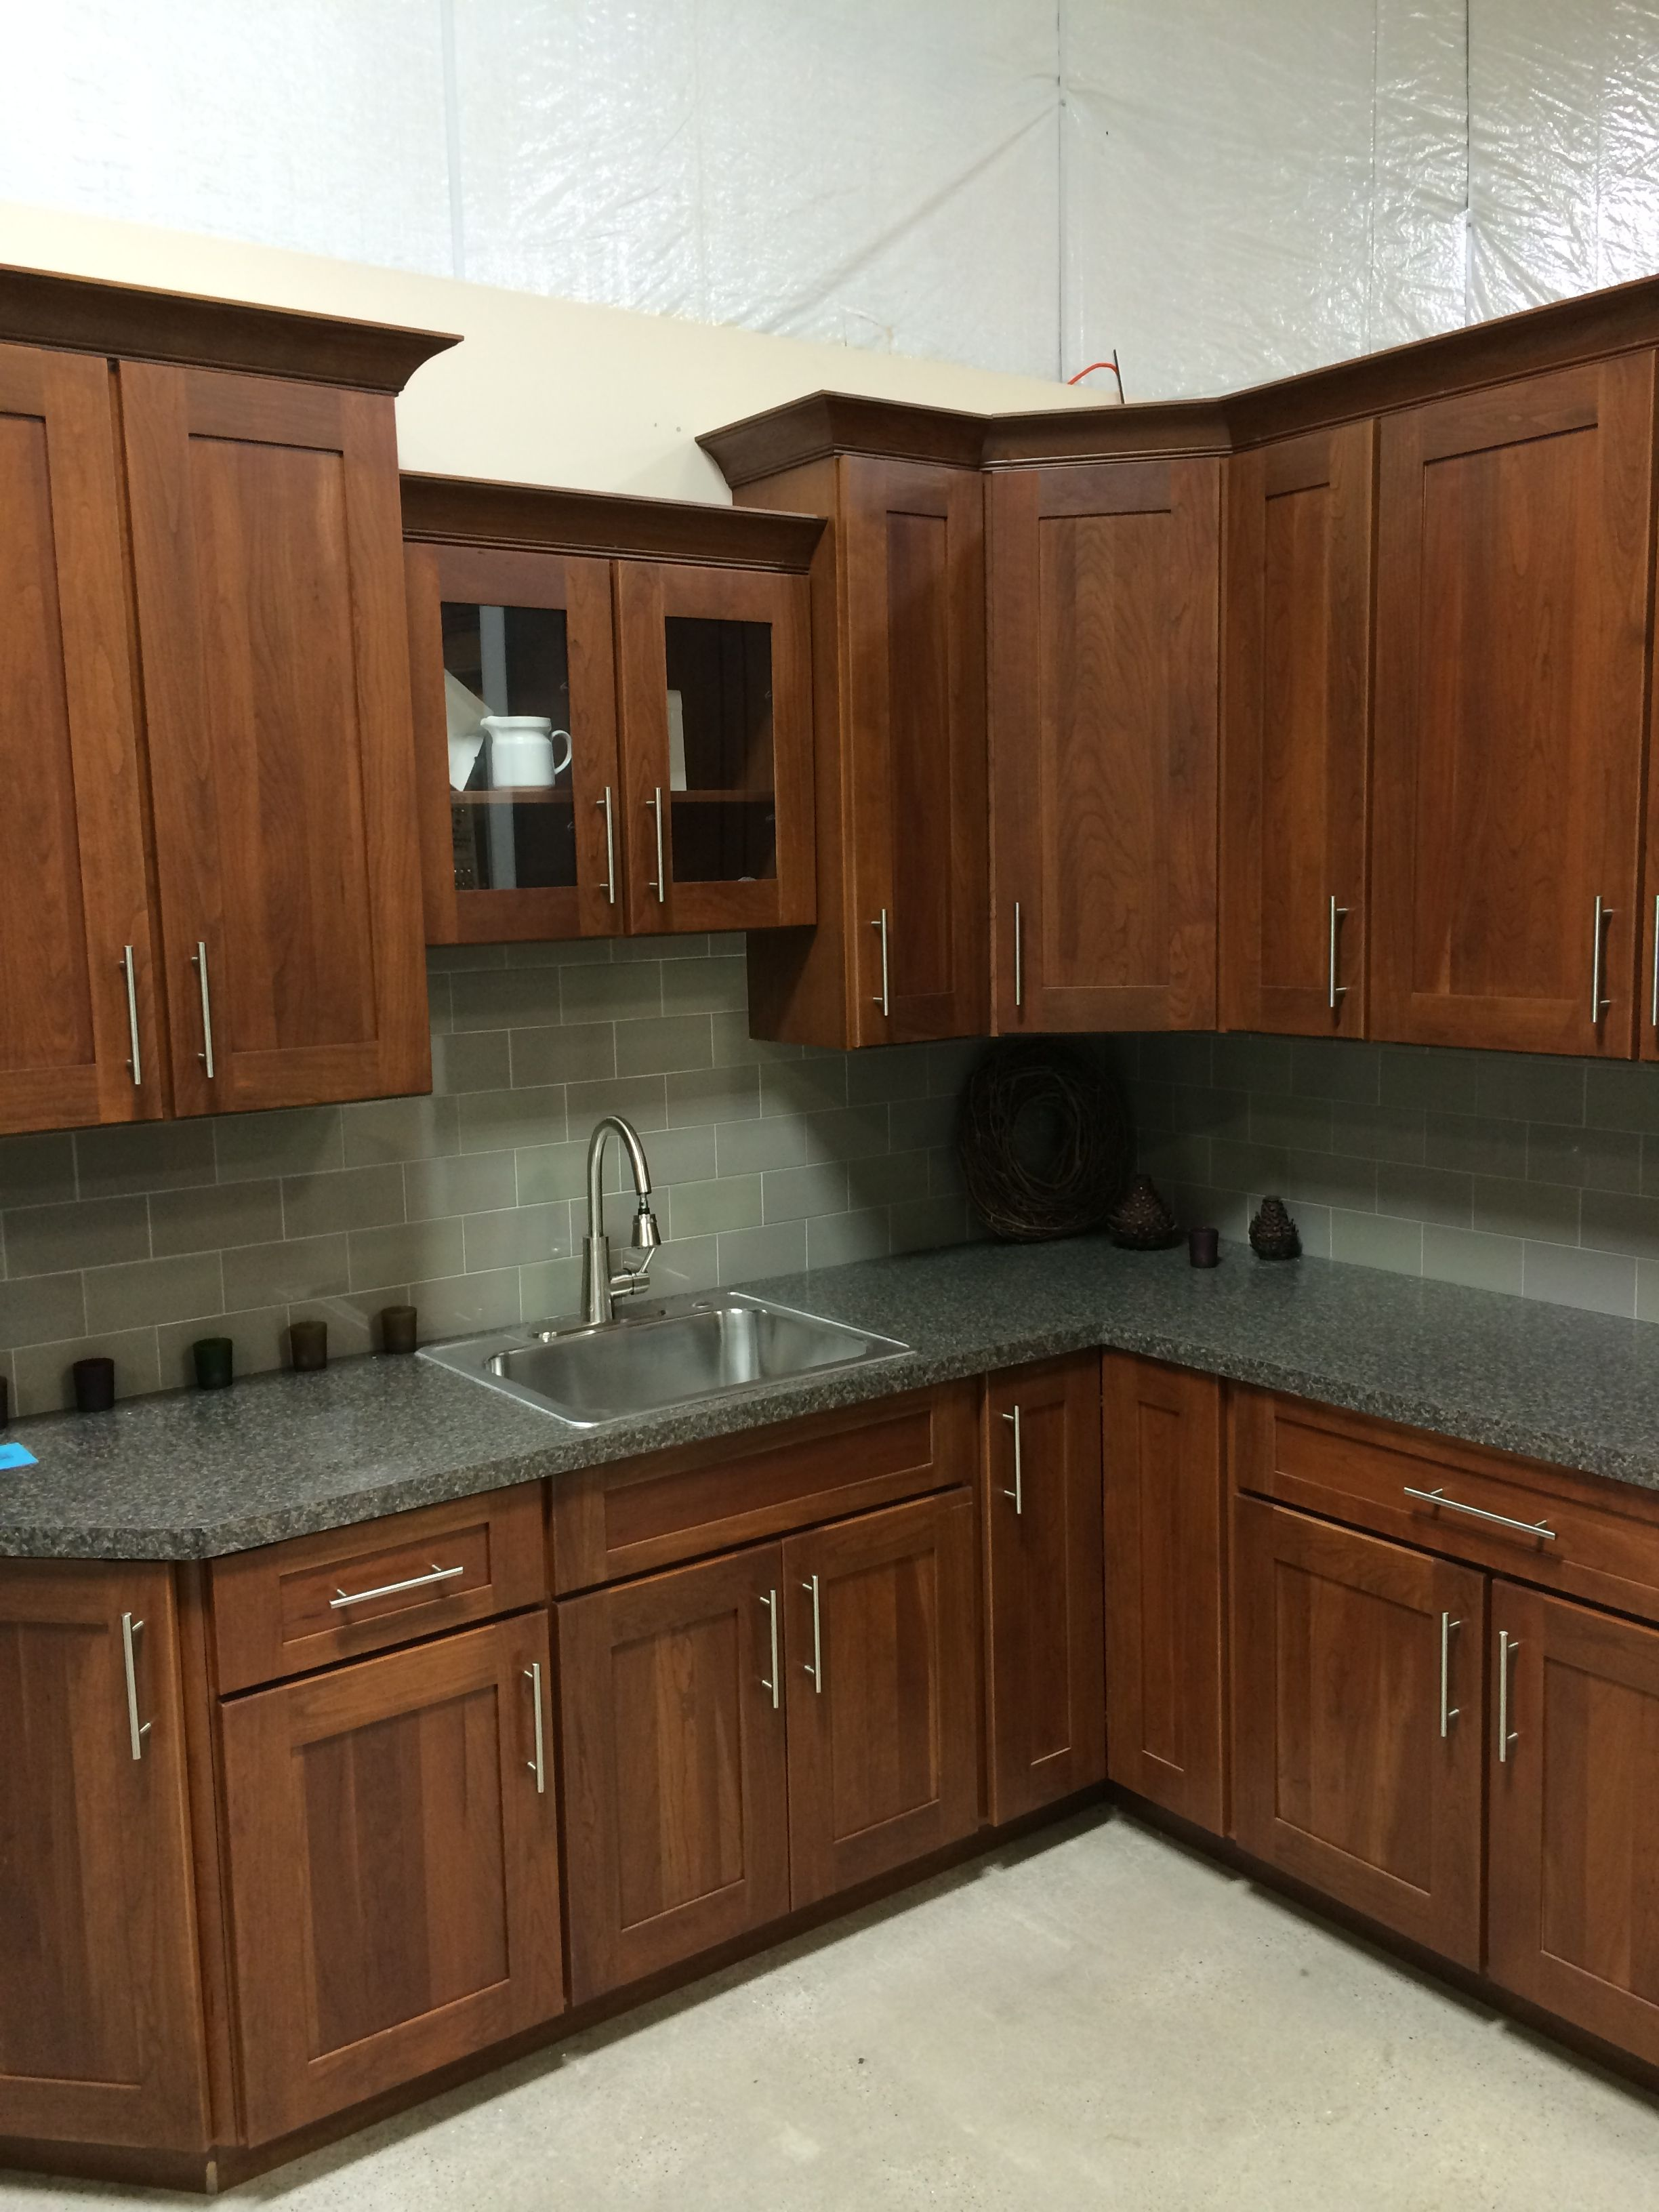 Affordable Kitchens And Baths Kitchen Aid Wall Oven Pin By On Bath 5 000 Remodel Appliances Http Www